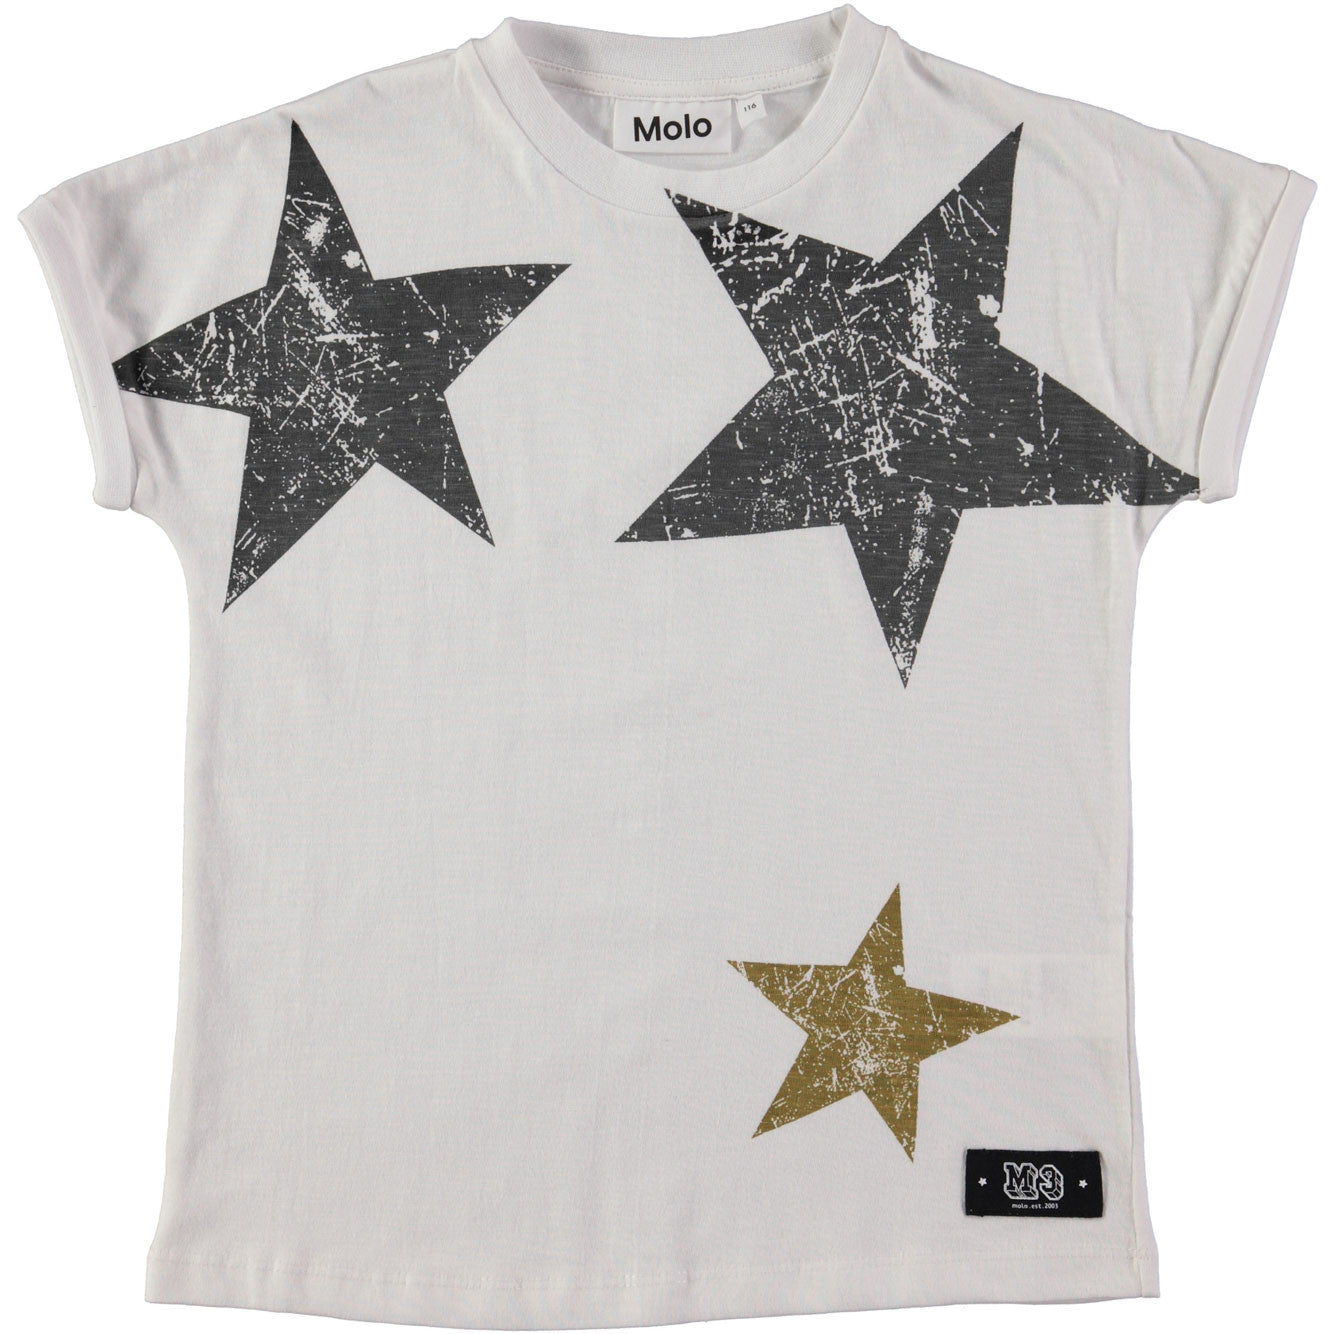 Molo  Bright White Star Tee - Ladida